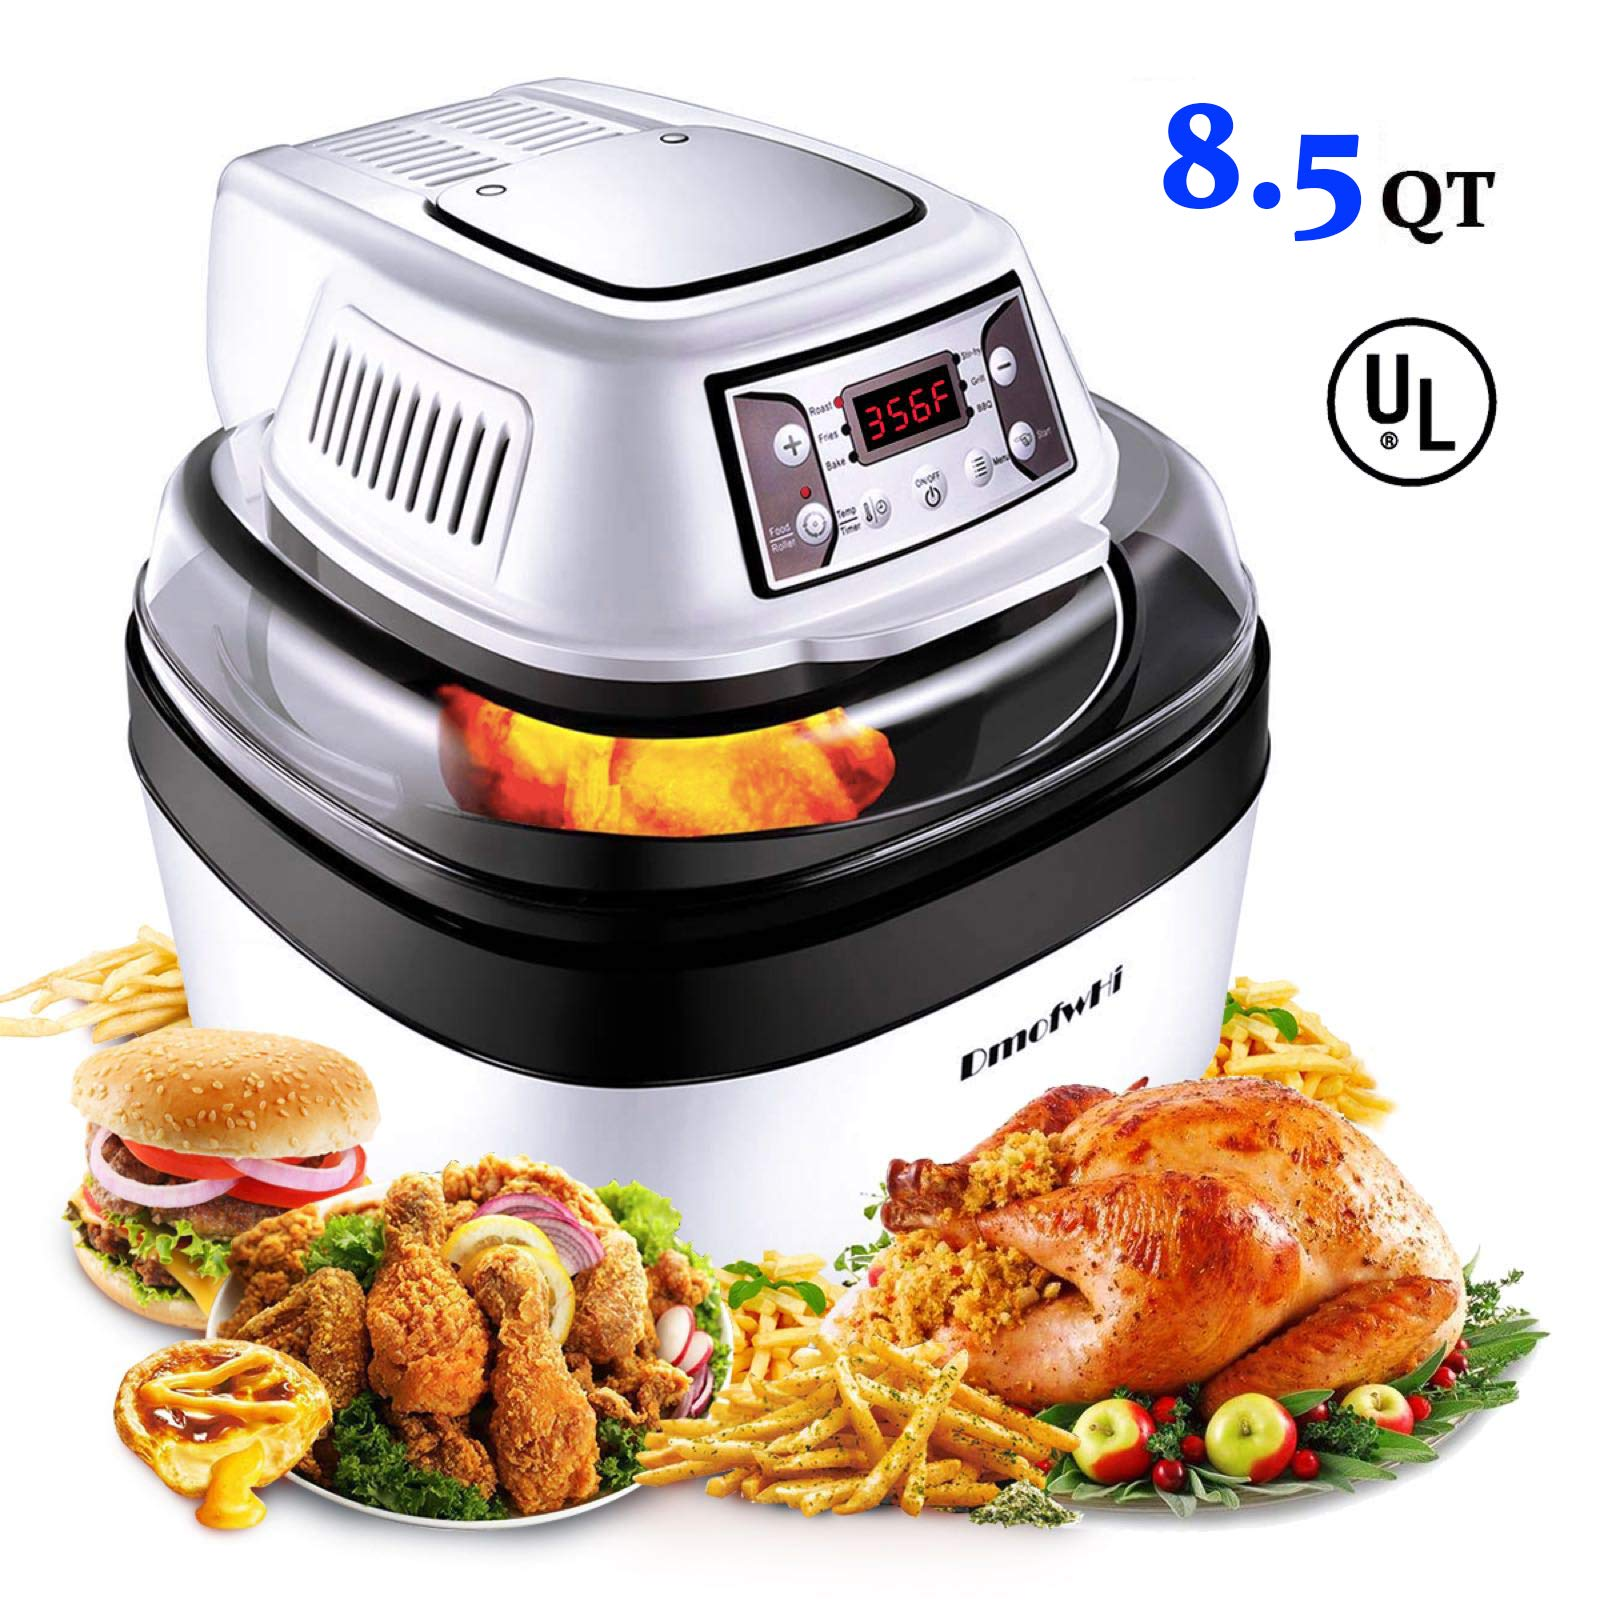 DmofwHi Large Air Fryer Toaster Oven XL/8QT, 1000 Watt Programable Air Fryer with 6 Presets and Rich Accessories 0-60 Mins Timer 122-446 ℉ Fask Cooking | Oilless Health Cooker - White by DmofwHi